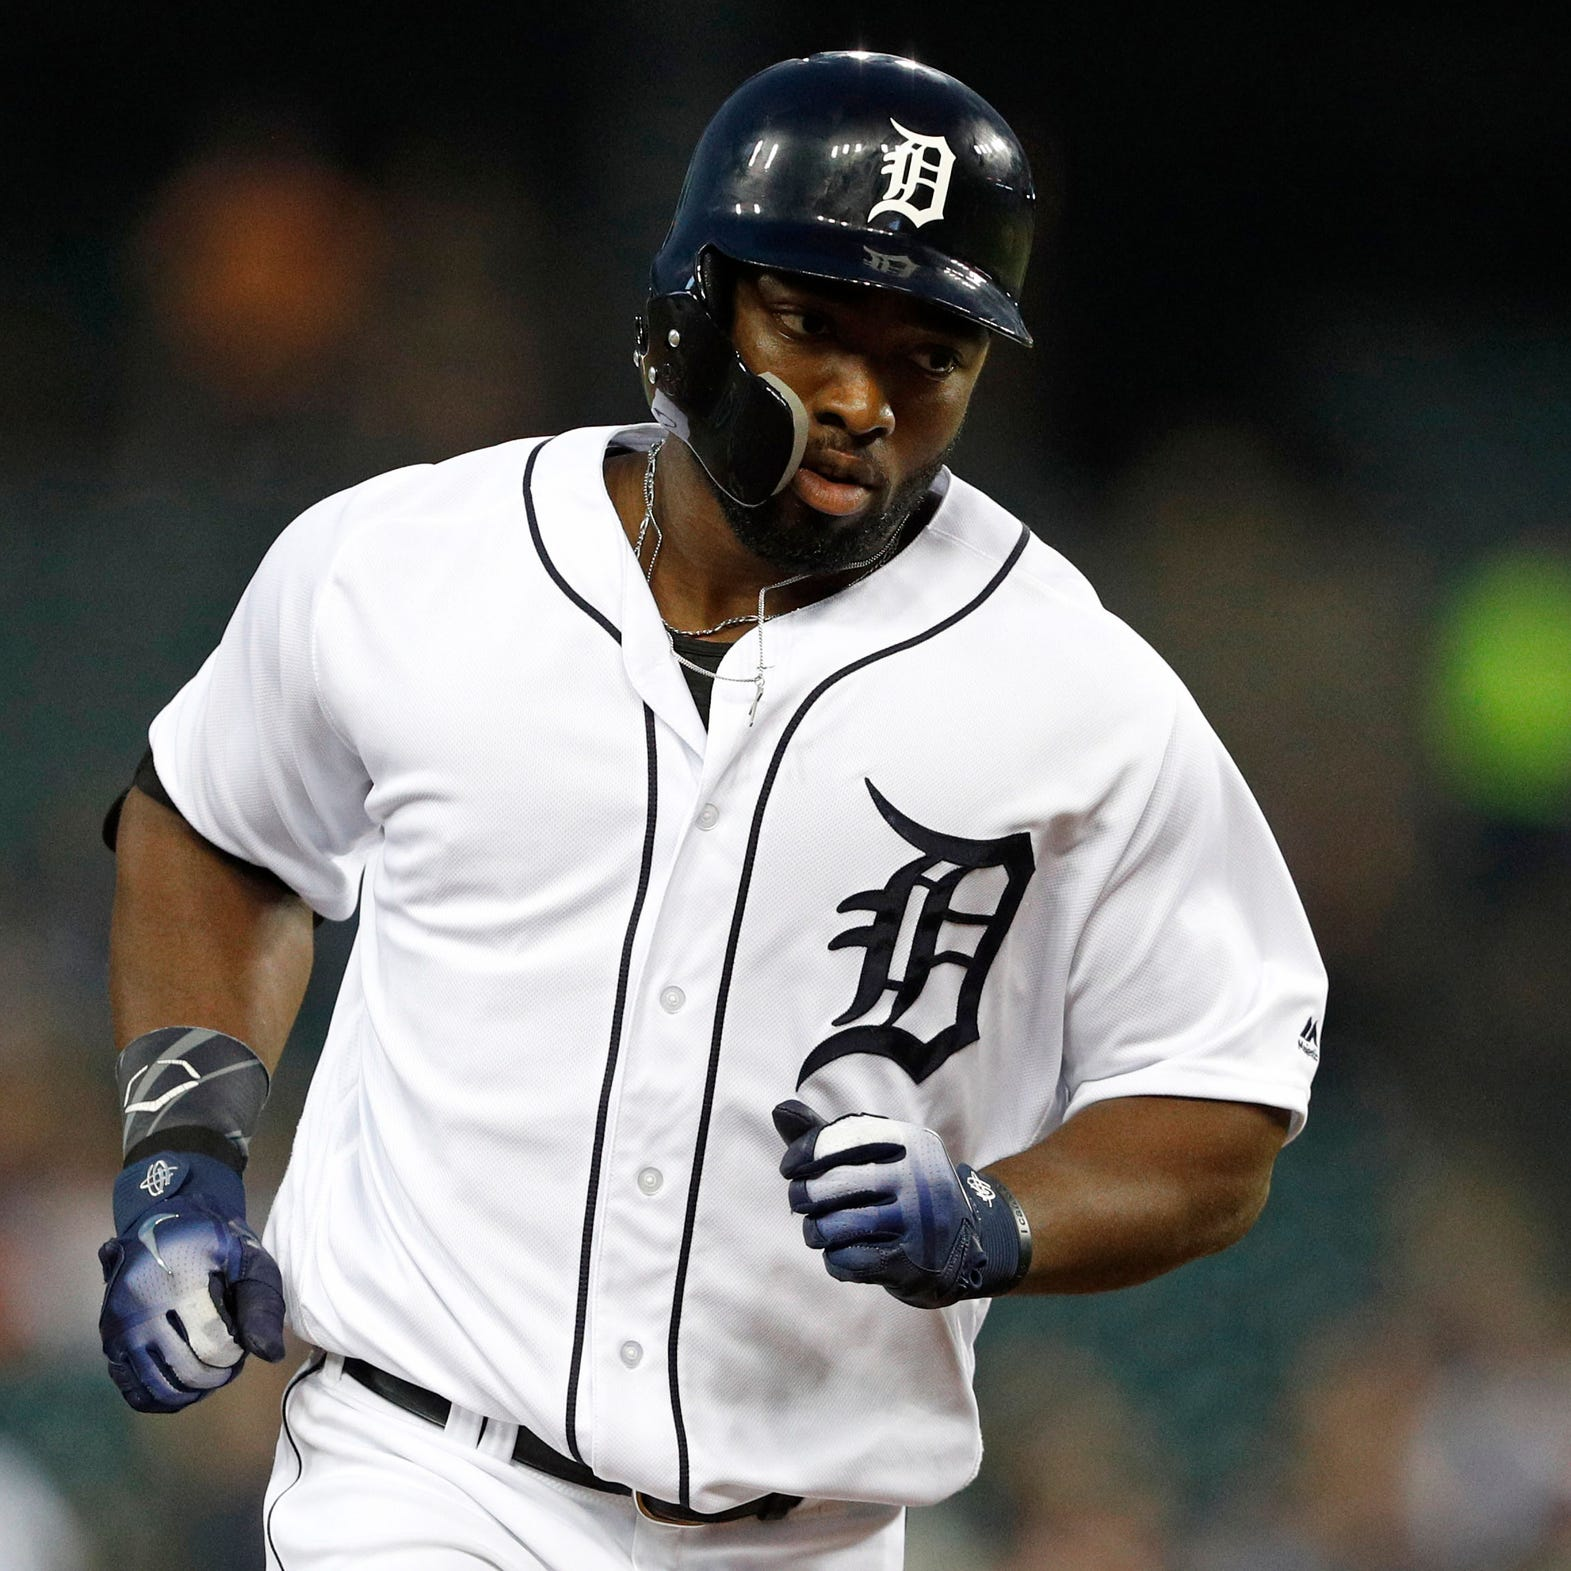 Christin Stewart's power surge a glimpse of Detroit Tigers' future